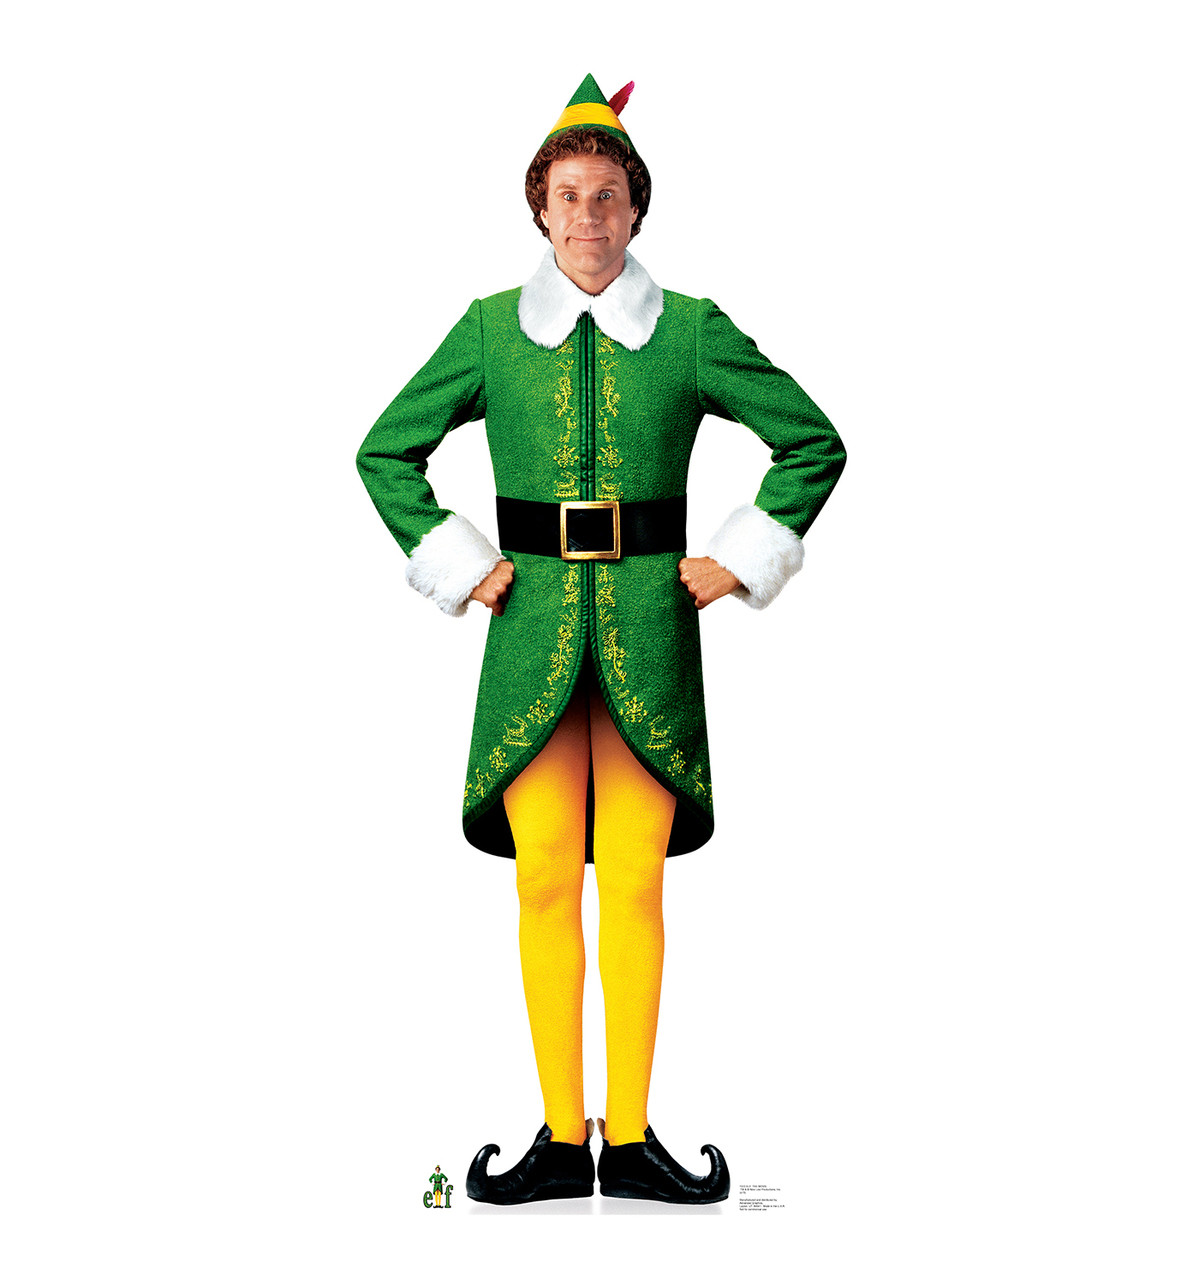 Life Size Buddy The Elf Movie Elf Cardboard Standup